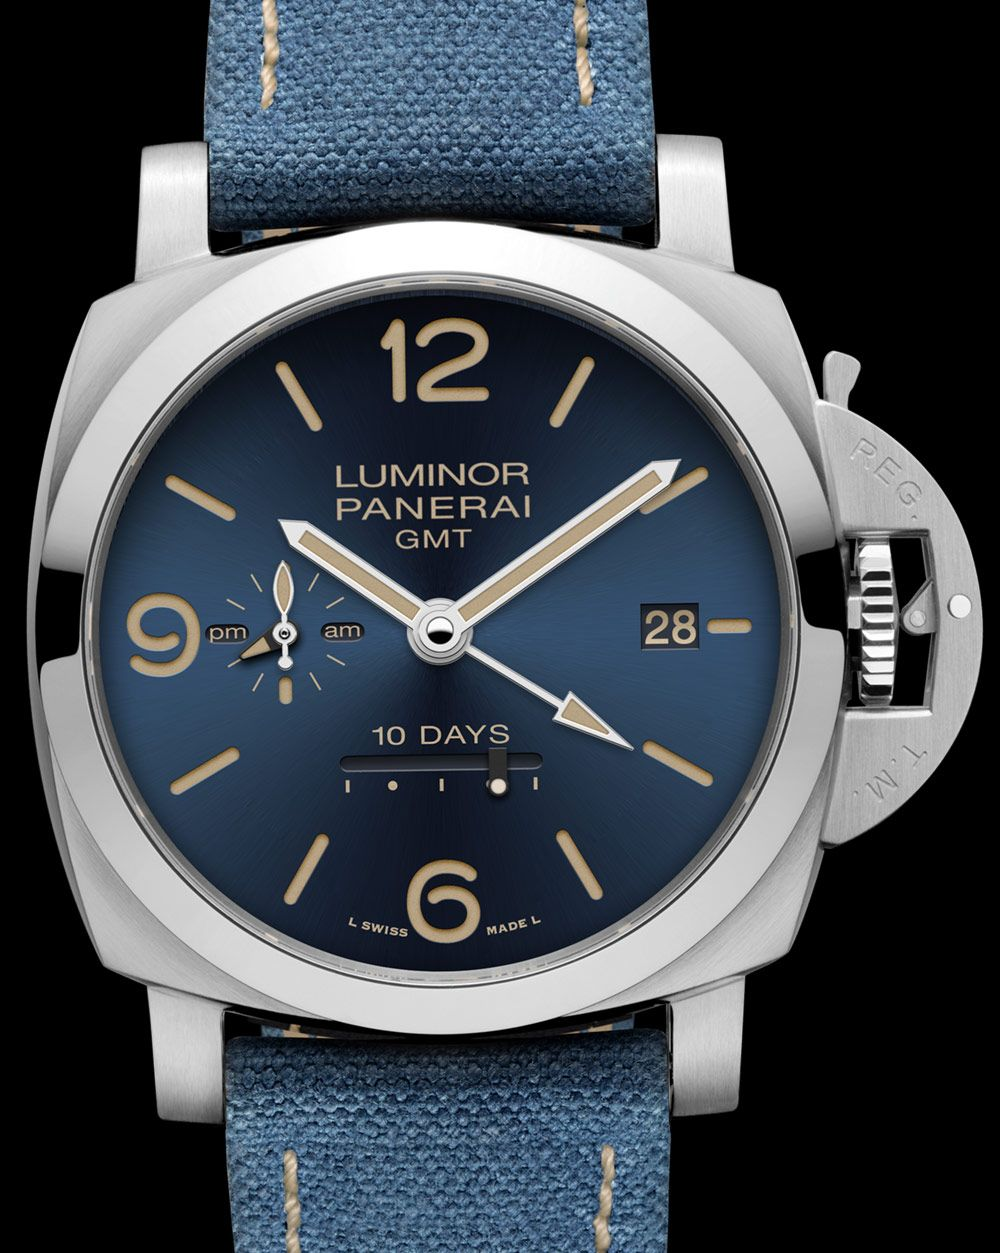 ebefd0c53a0 Panerai Luminor 1950 10 Days GMT Automatic Acciaio Design Miami PAM986 Watch  Watch Releases